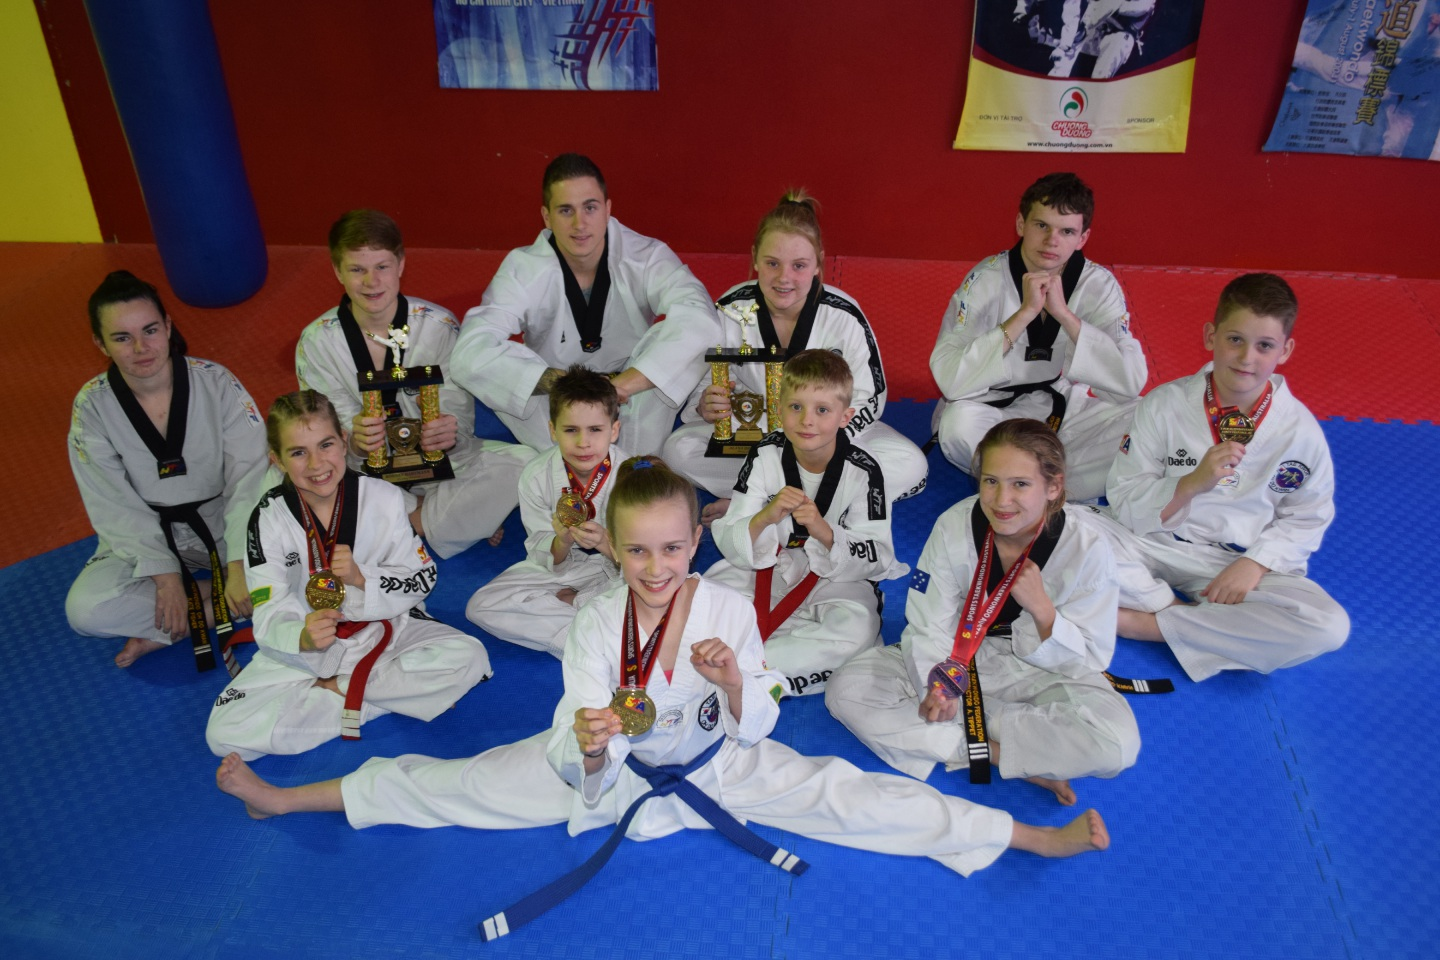 Oh Do Kwan members in Port Kennedy had a successful National Championships in Victoria.